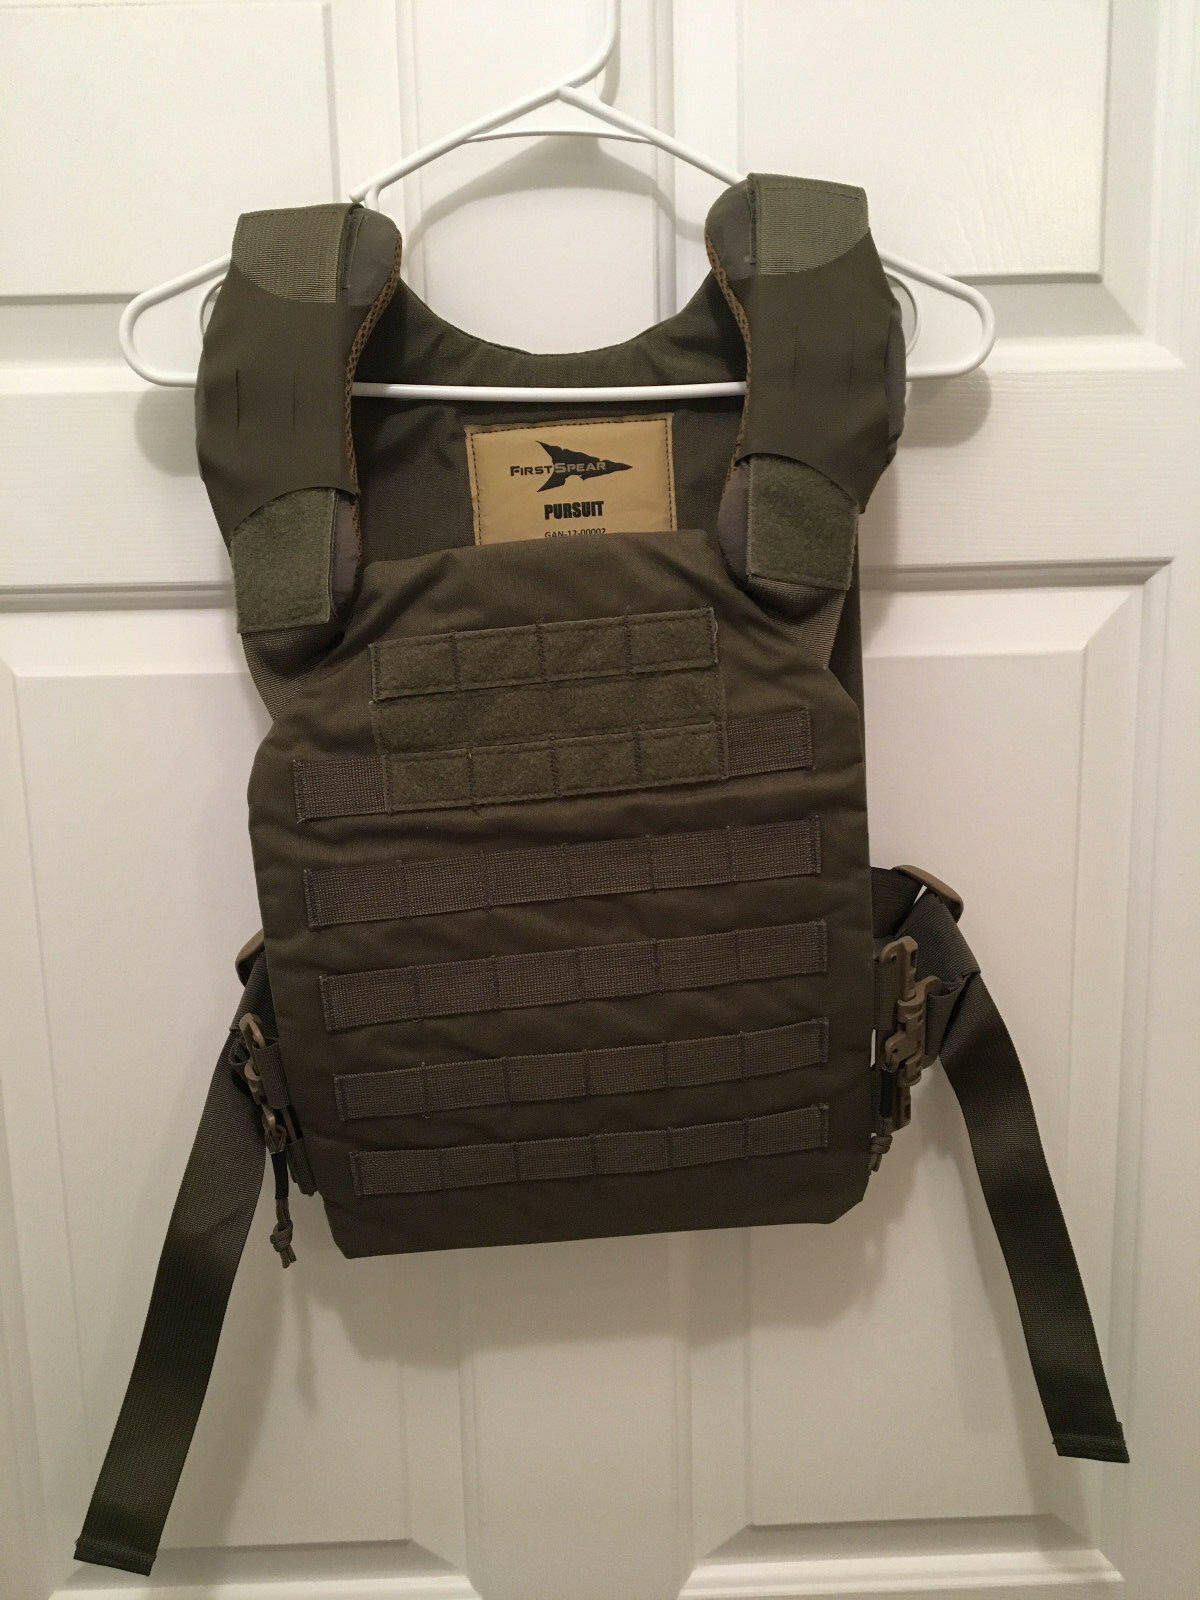 New FirstSpear Pursuit Tactical Armor Body Plate Carrier Ranger Green  SOF JSOC  free shipping on all orders